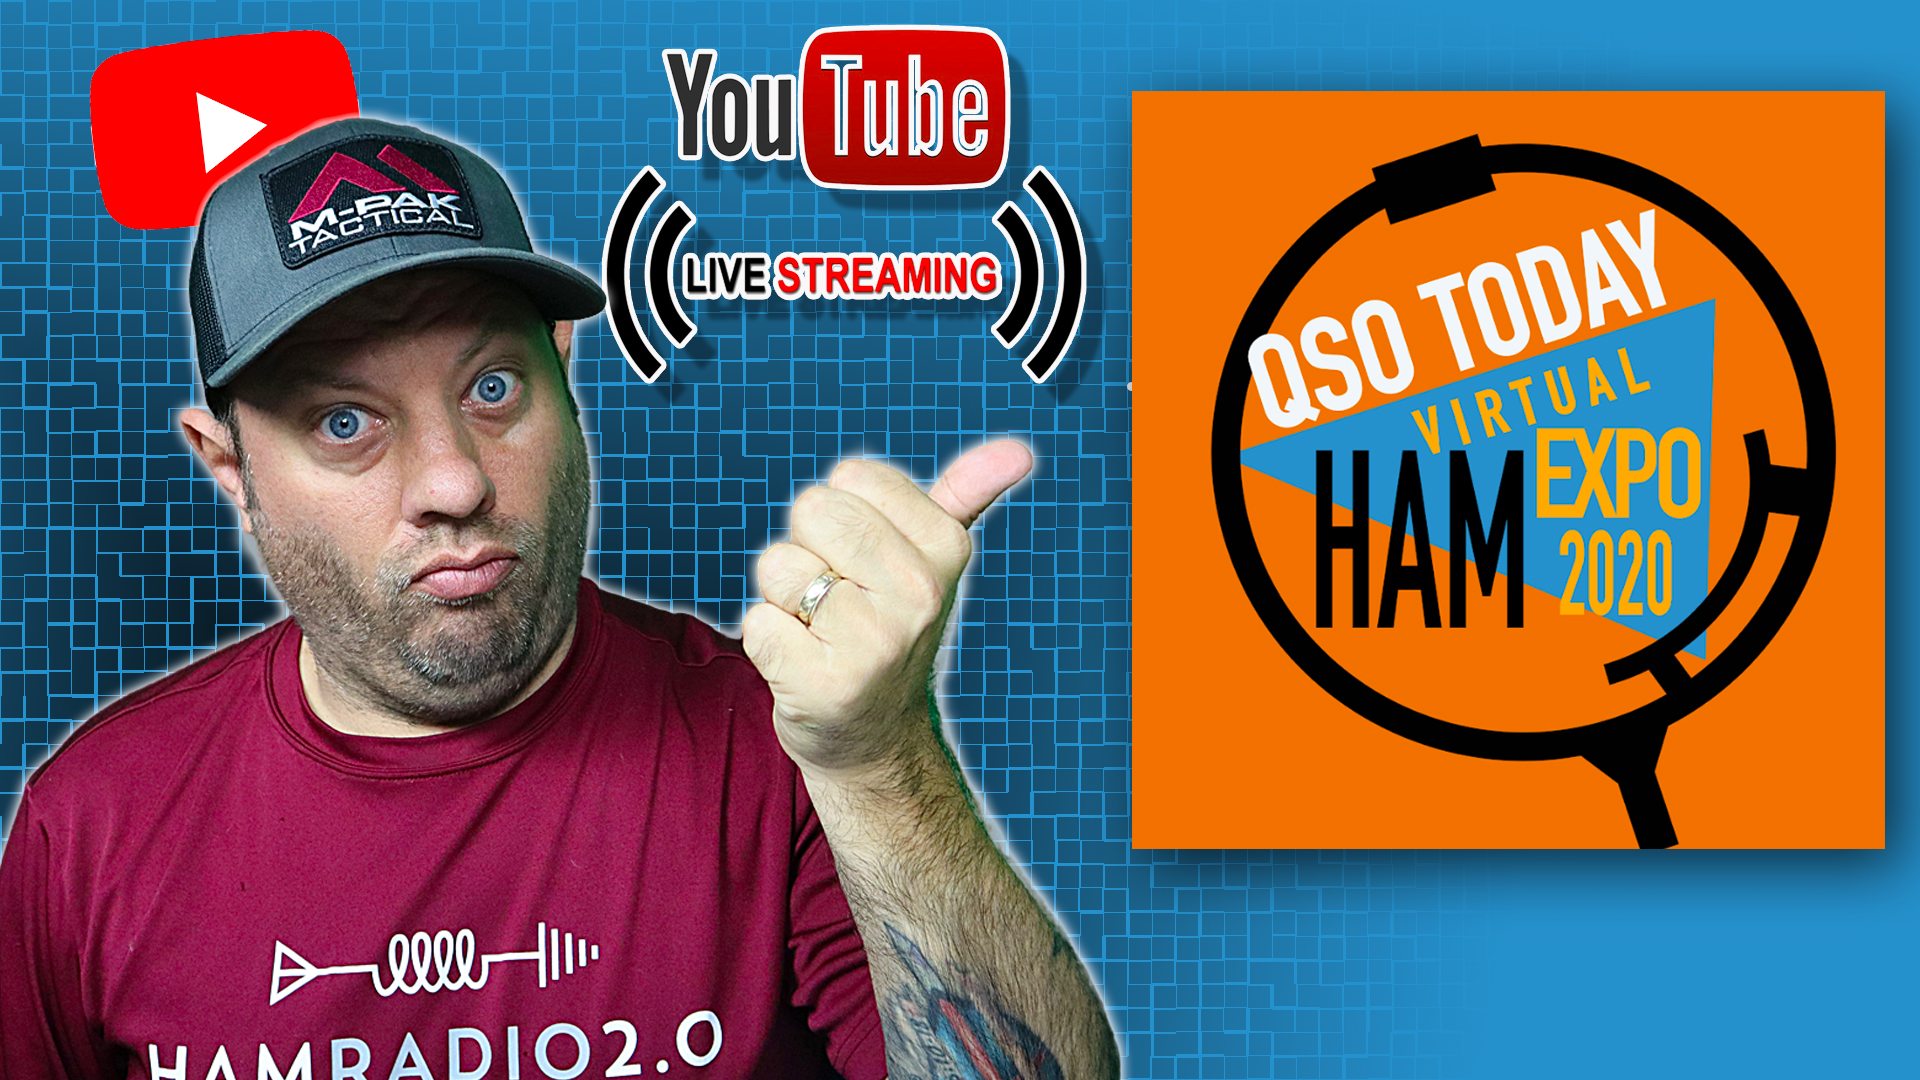 Episode 566: QSO Today Virtual Ham Expo Interview and Livestream | Online Virtual Hamfest!